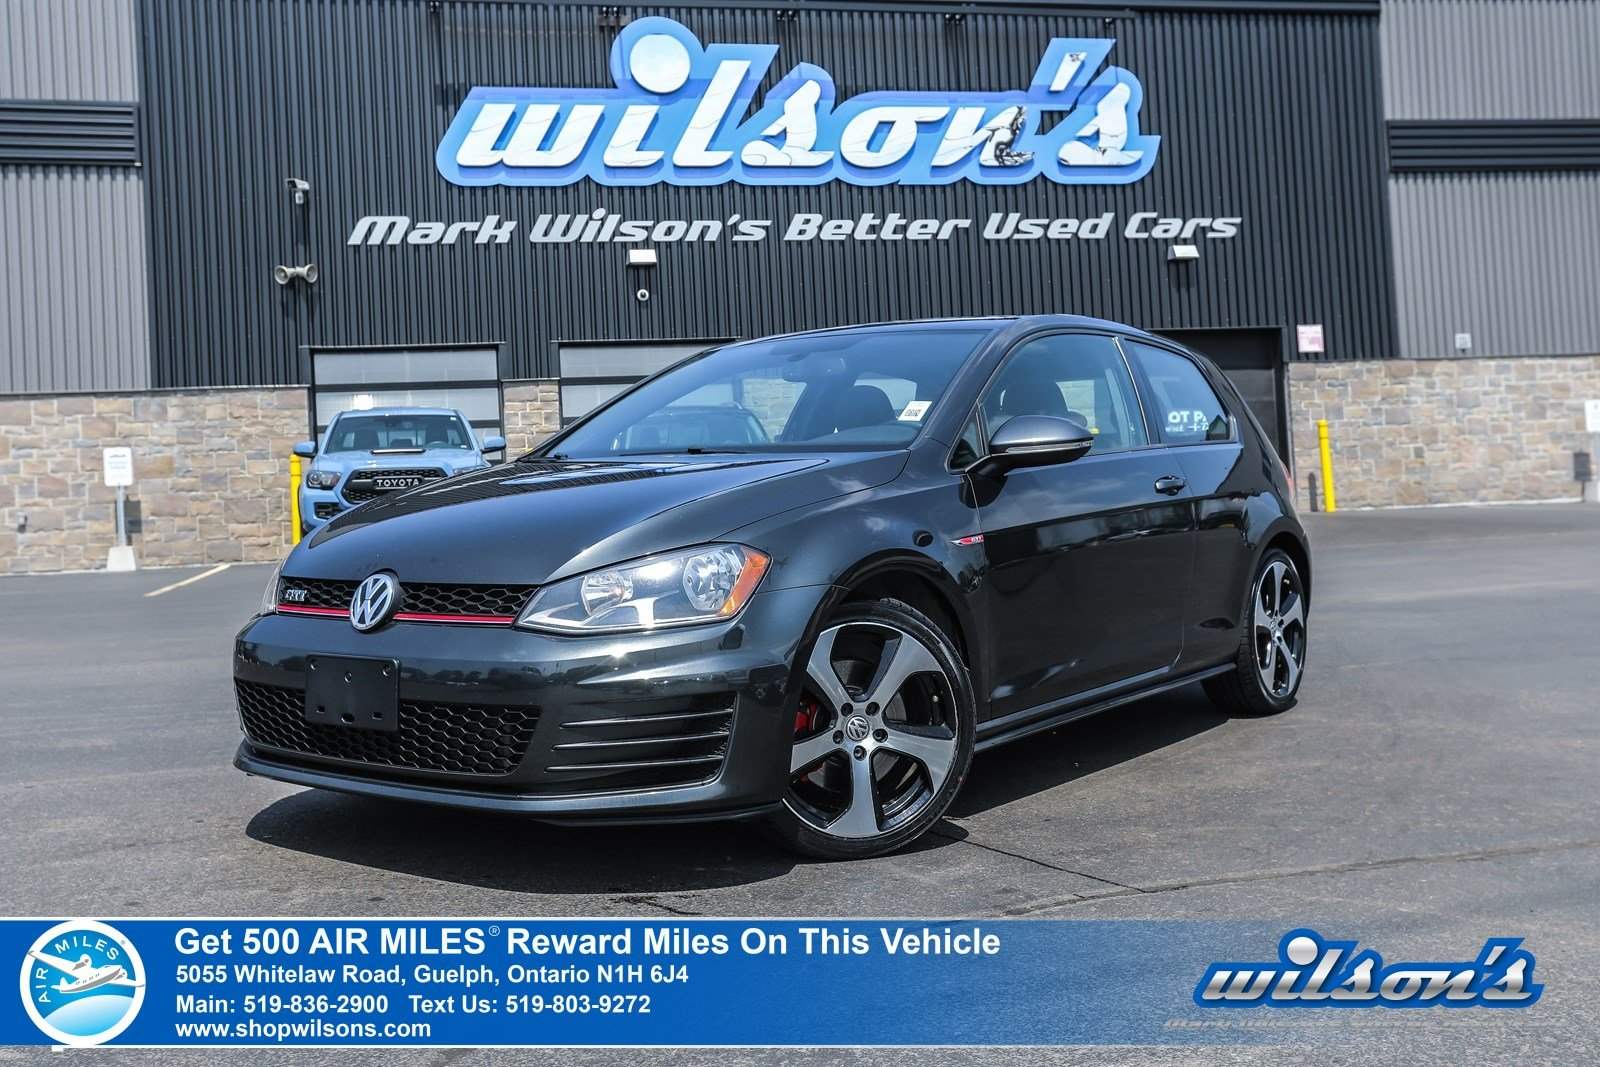 Certified Pre-Owned 2015 Volkswagen Golf GTI - NEW TIRES! 6 Speed, Sunroof, Bluetooth, Heated Seats, Alloys, Cruise Control, and more!